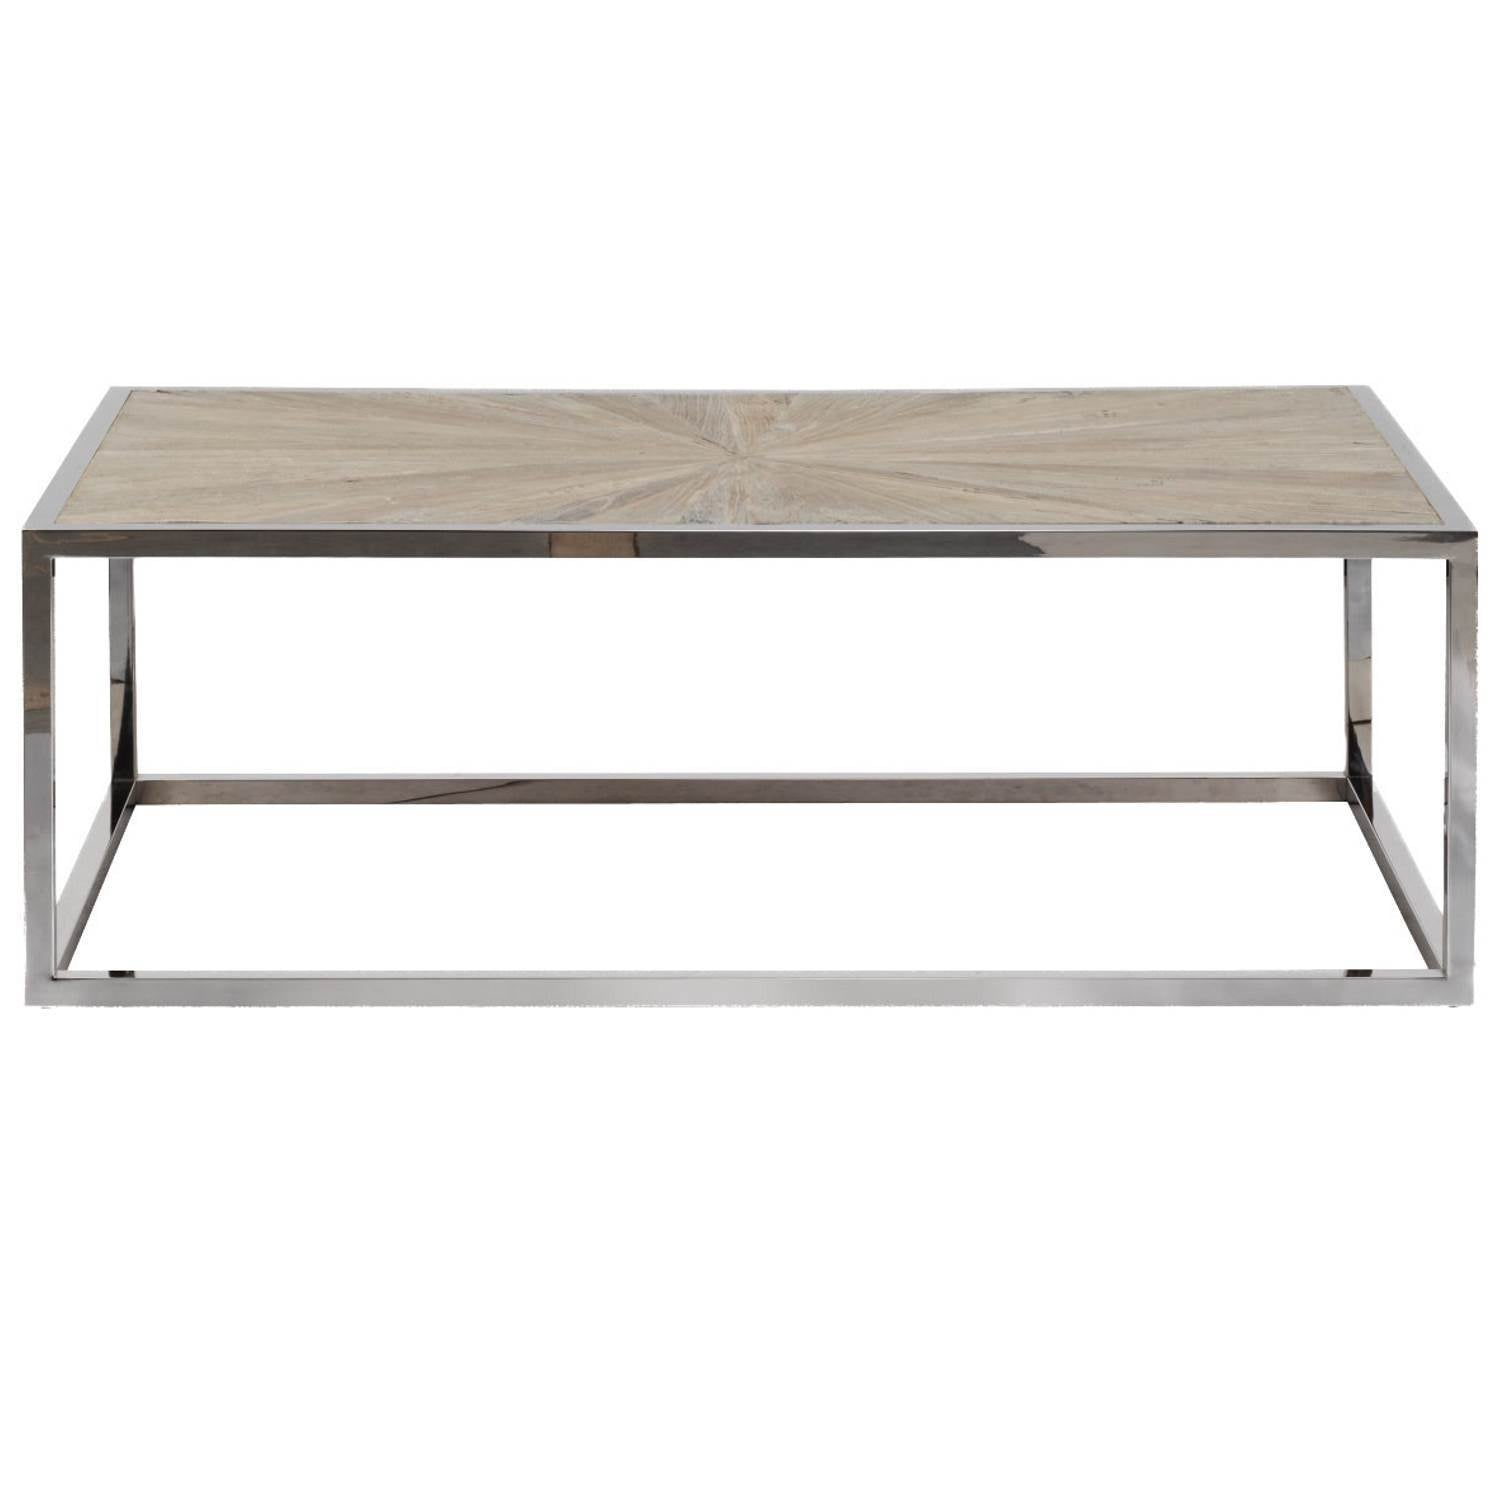 Parquet Coffee Table in Smoke Gray Elm